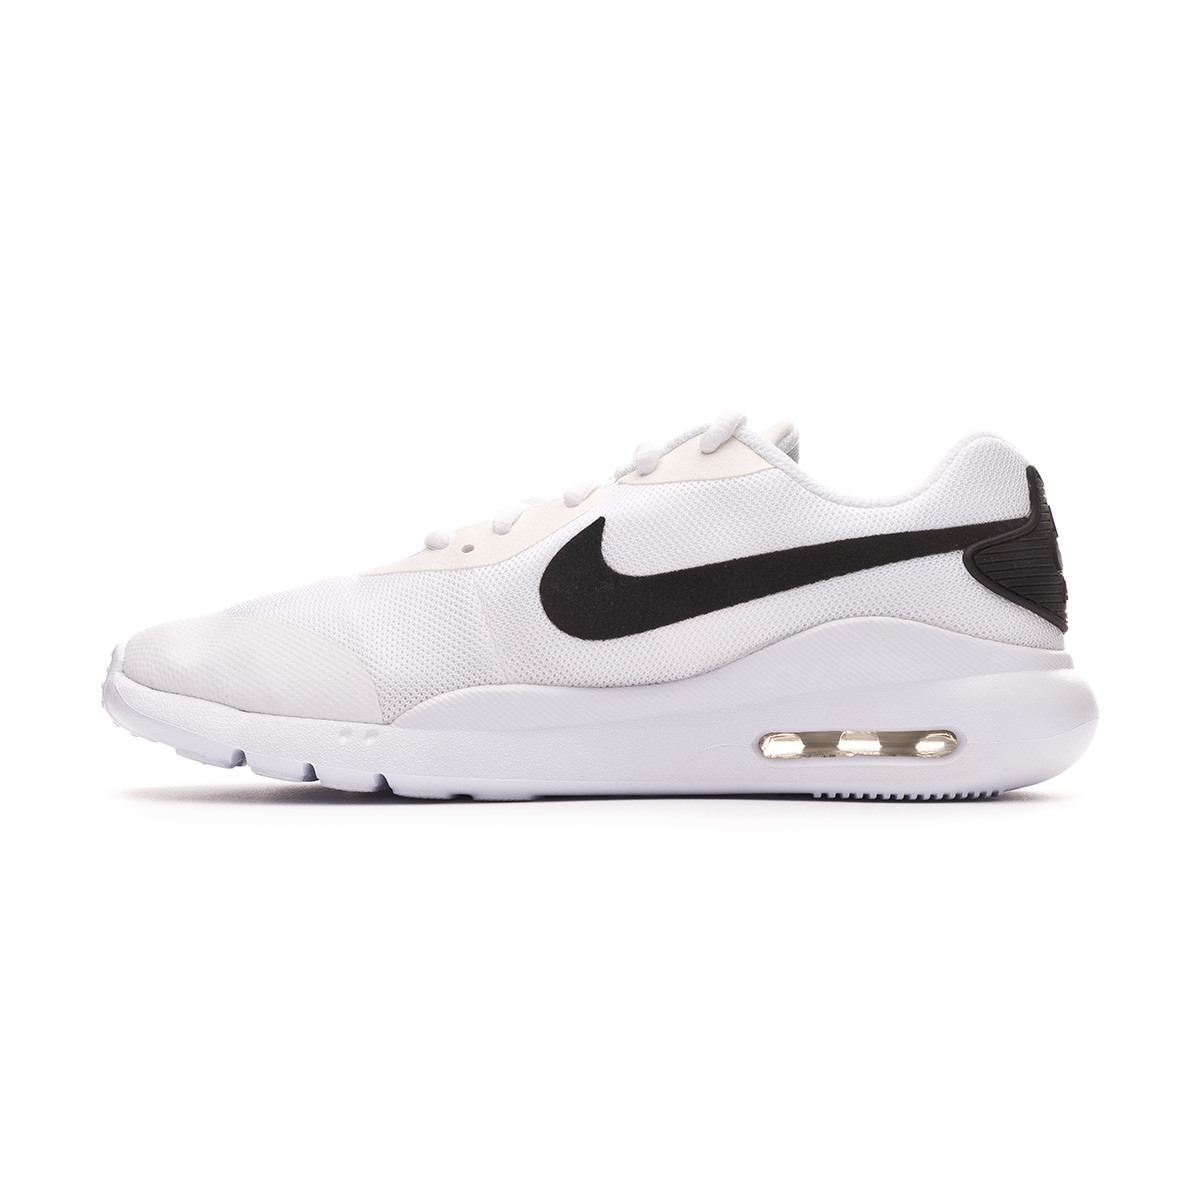 f7fde31d9 Trainers Nike Air Max Oketo GS Niño White-Black - Football store Fútbol  Emotion